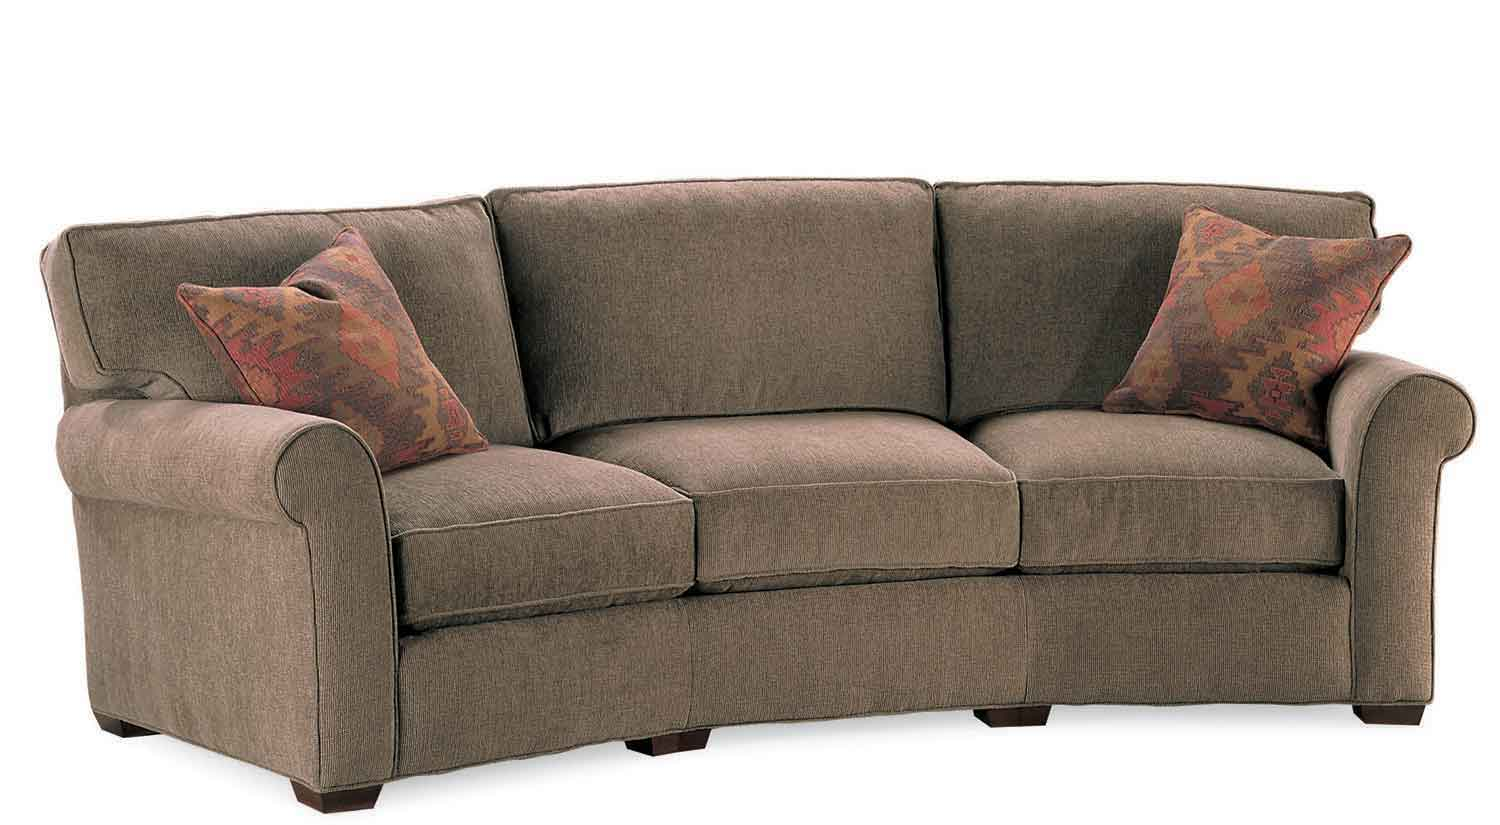 Circle Furniture Taylor Wedge Sofa Couches Ma